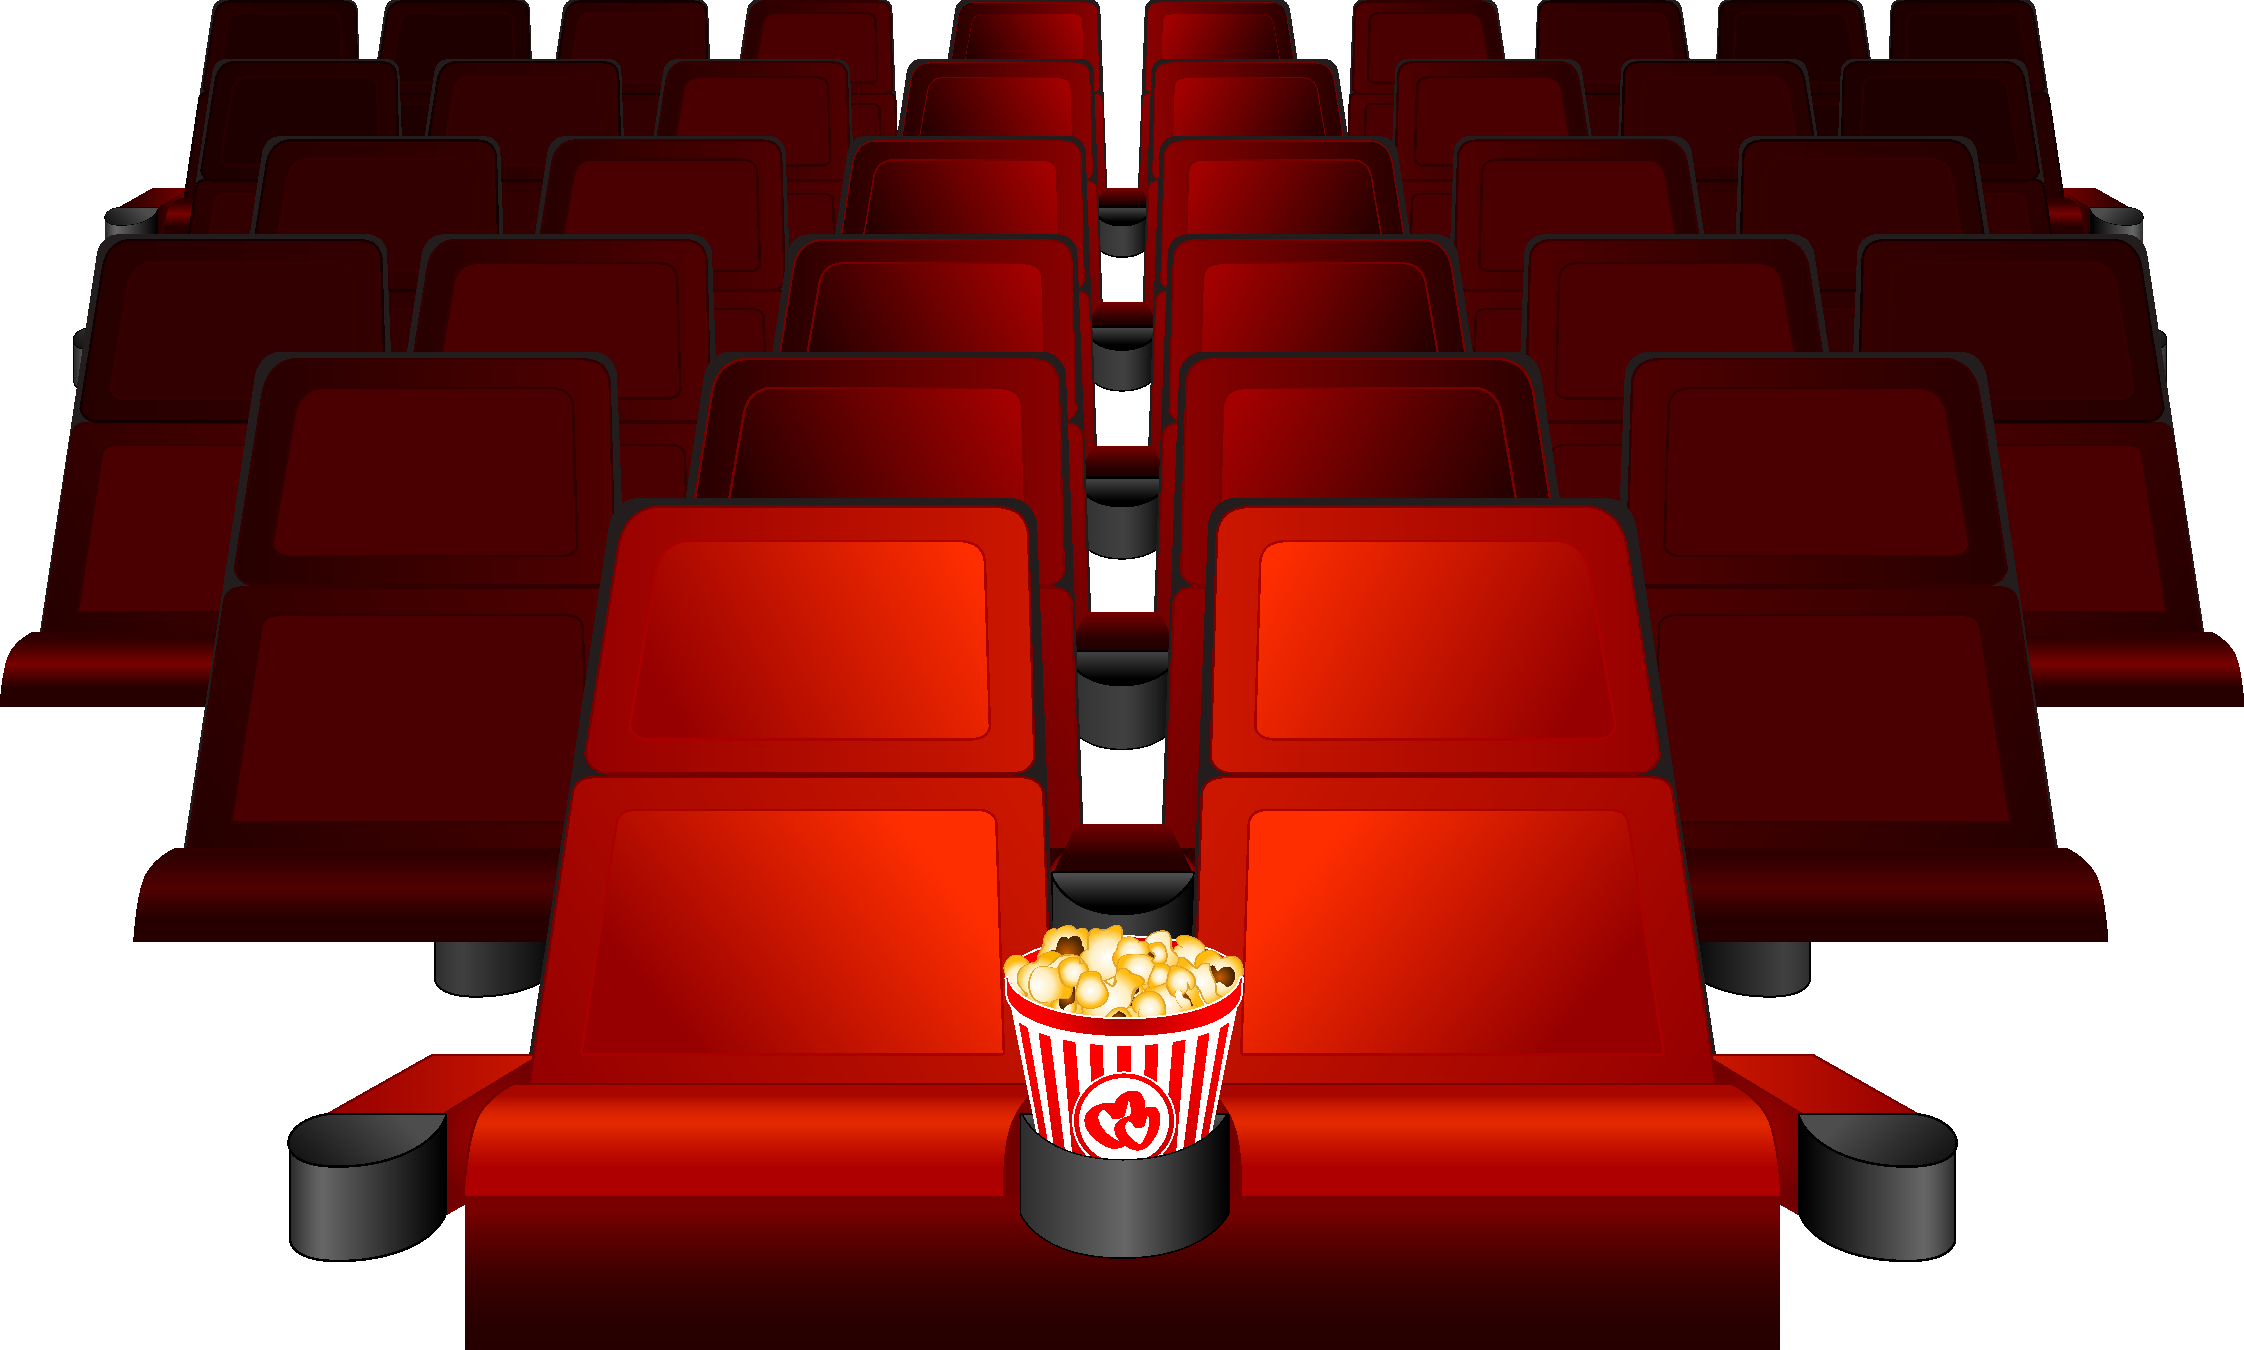 Library of movie seats picture royalty free download png ...